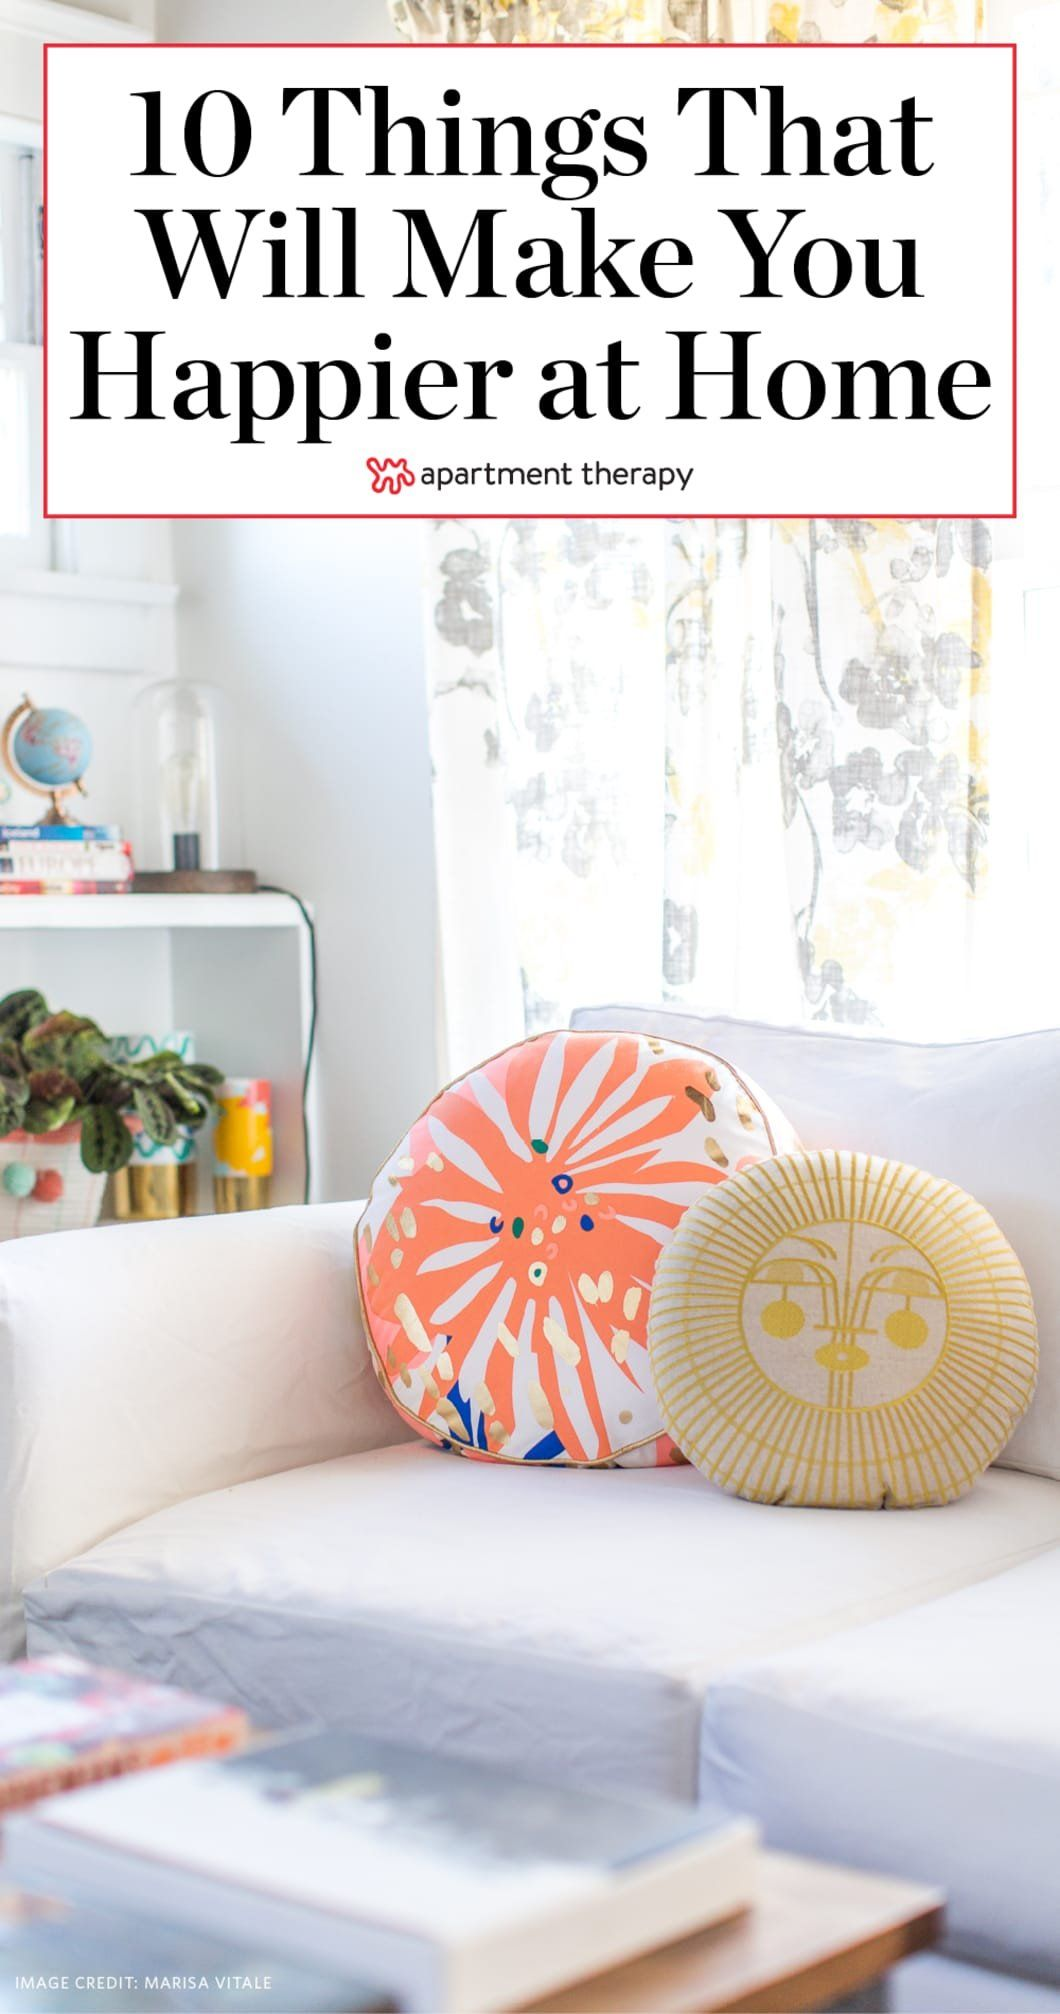 10 Simple Things To Make You Happier At Home In 2020 Home Decor Home Decor Tips Farm House Living Room